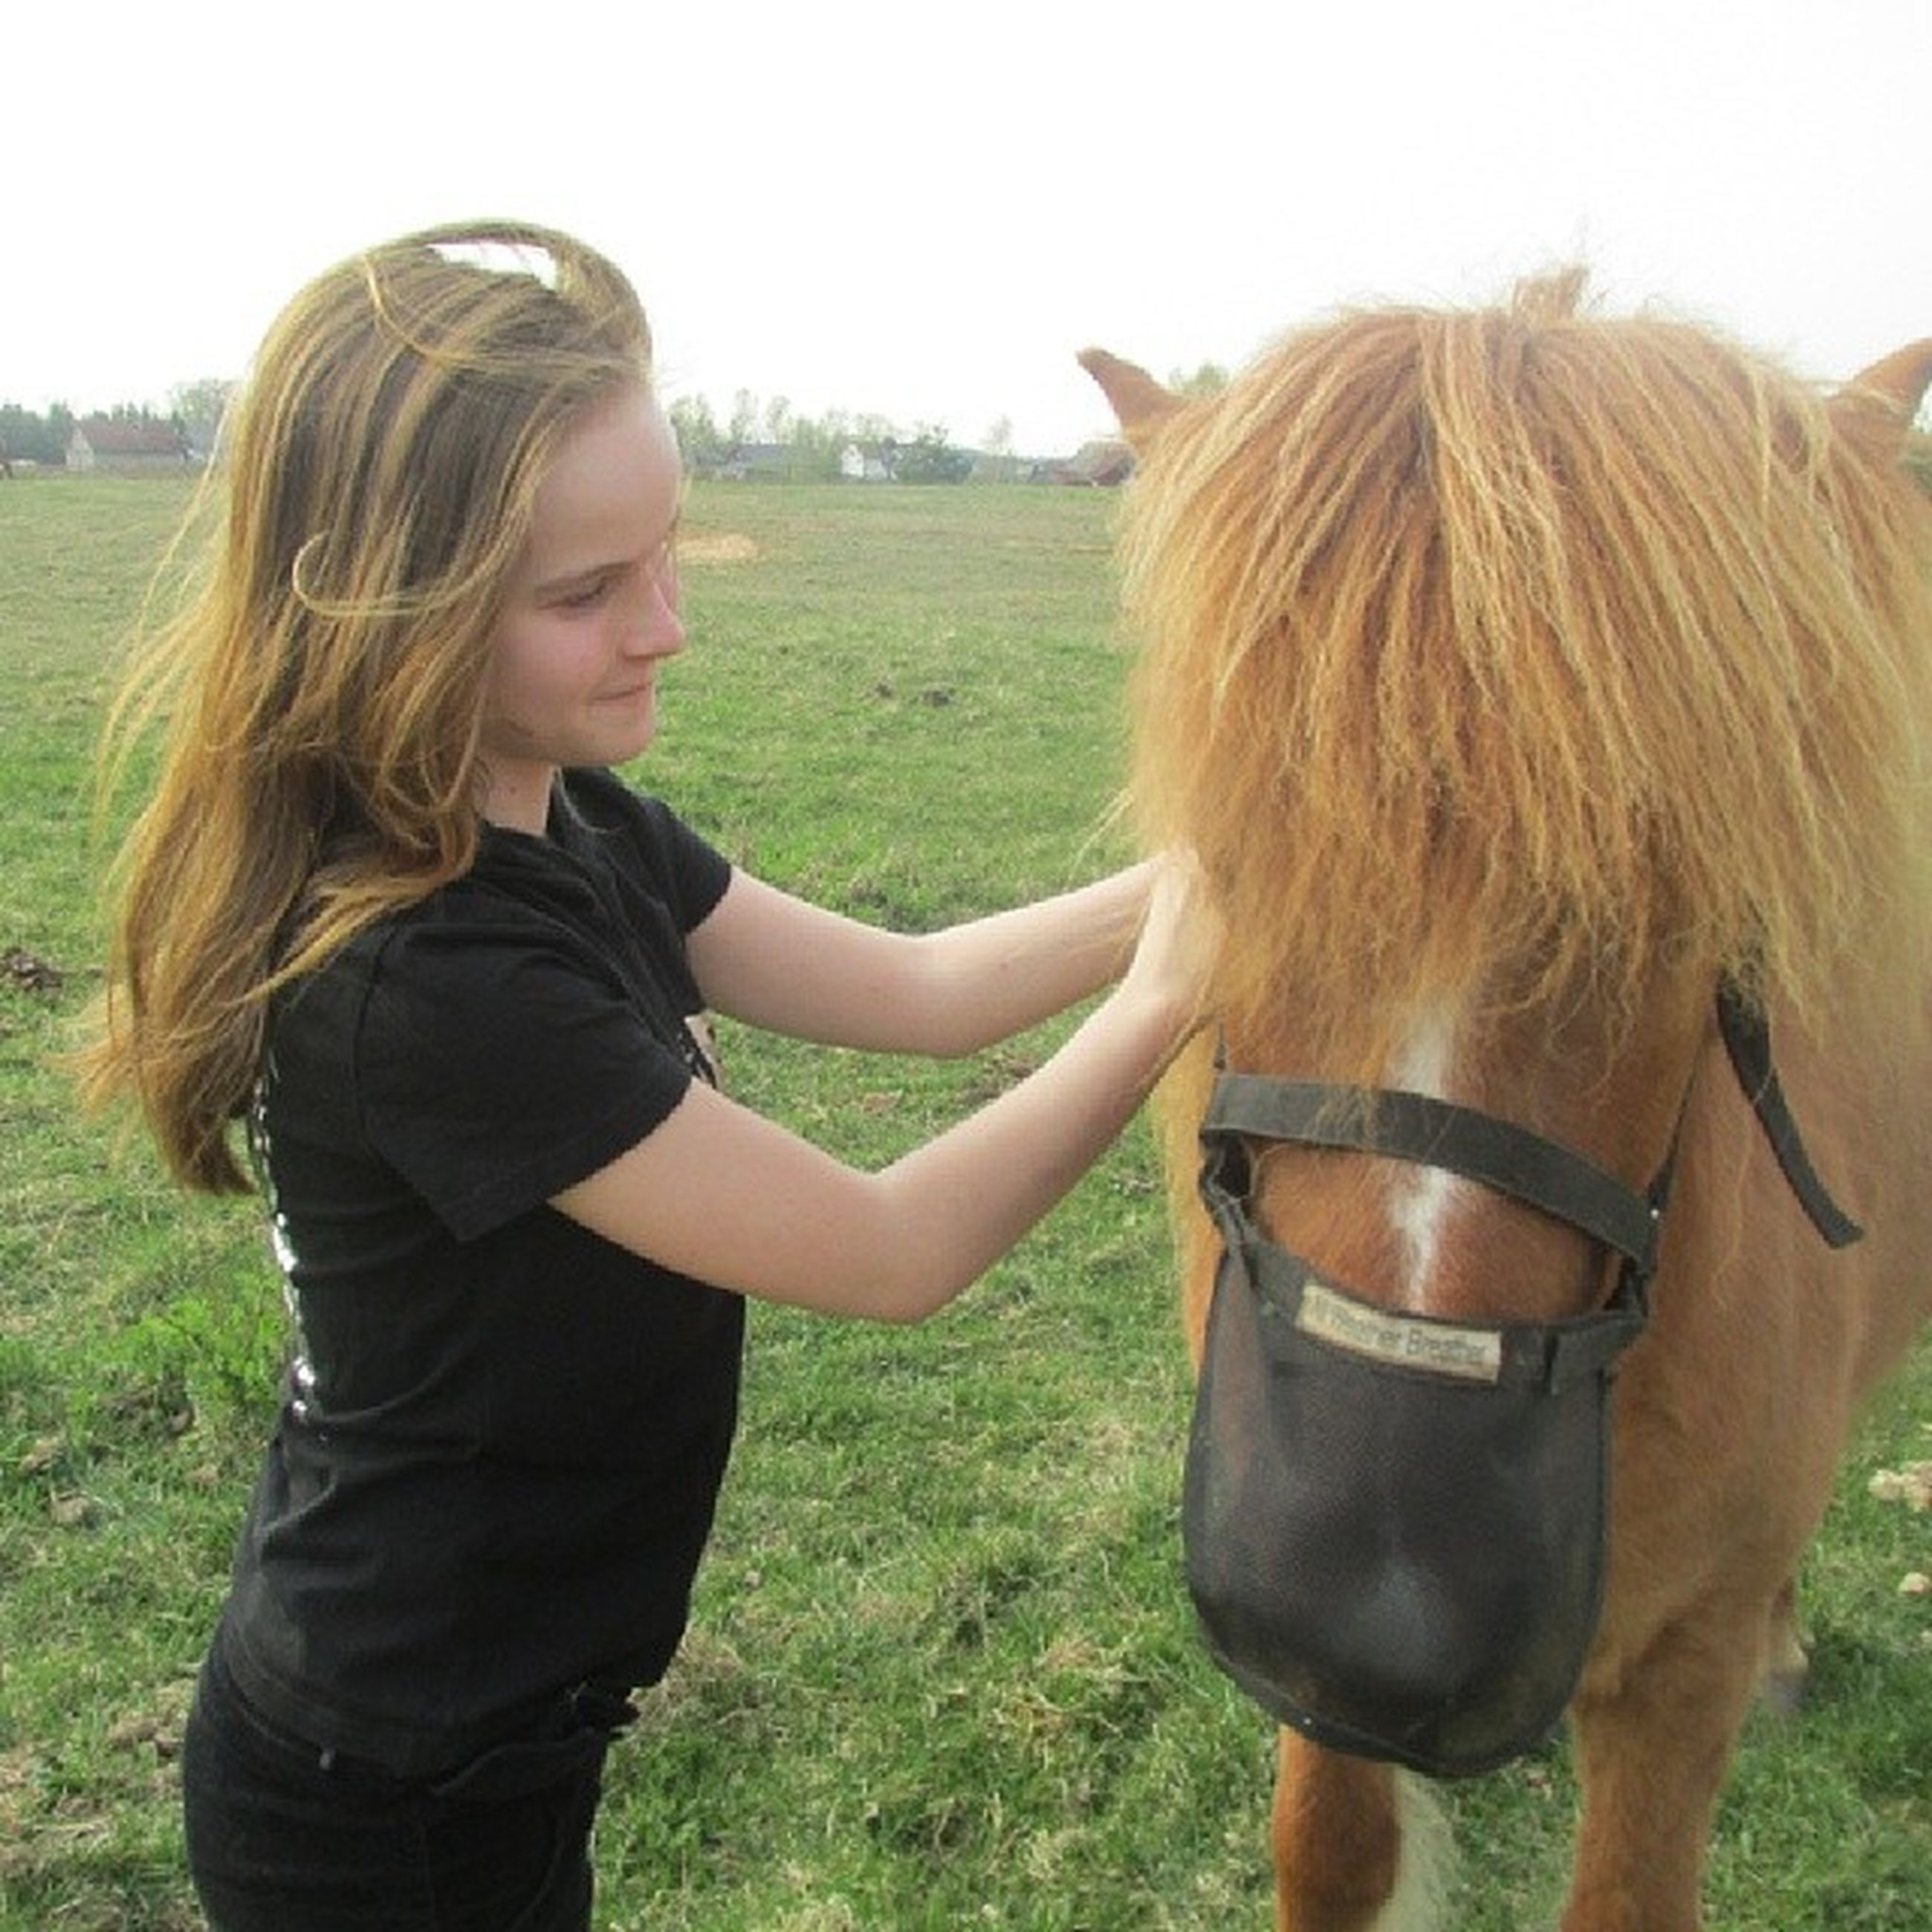 grass, field, long hair, person, young adult, young women, domestic animals, leisure activity, lifestyles, casual clothing, grassy, livestock, blond hair, standing, portrait, animal themes, looking at camera, horse